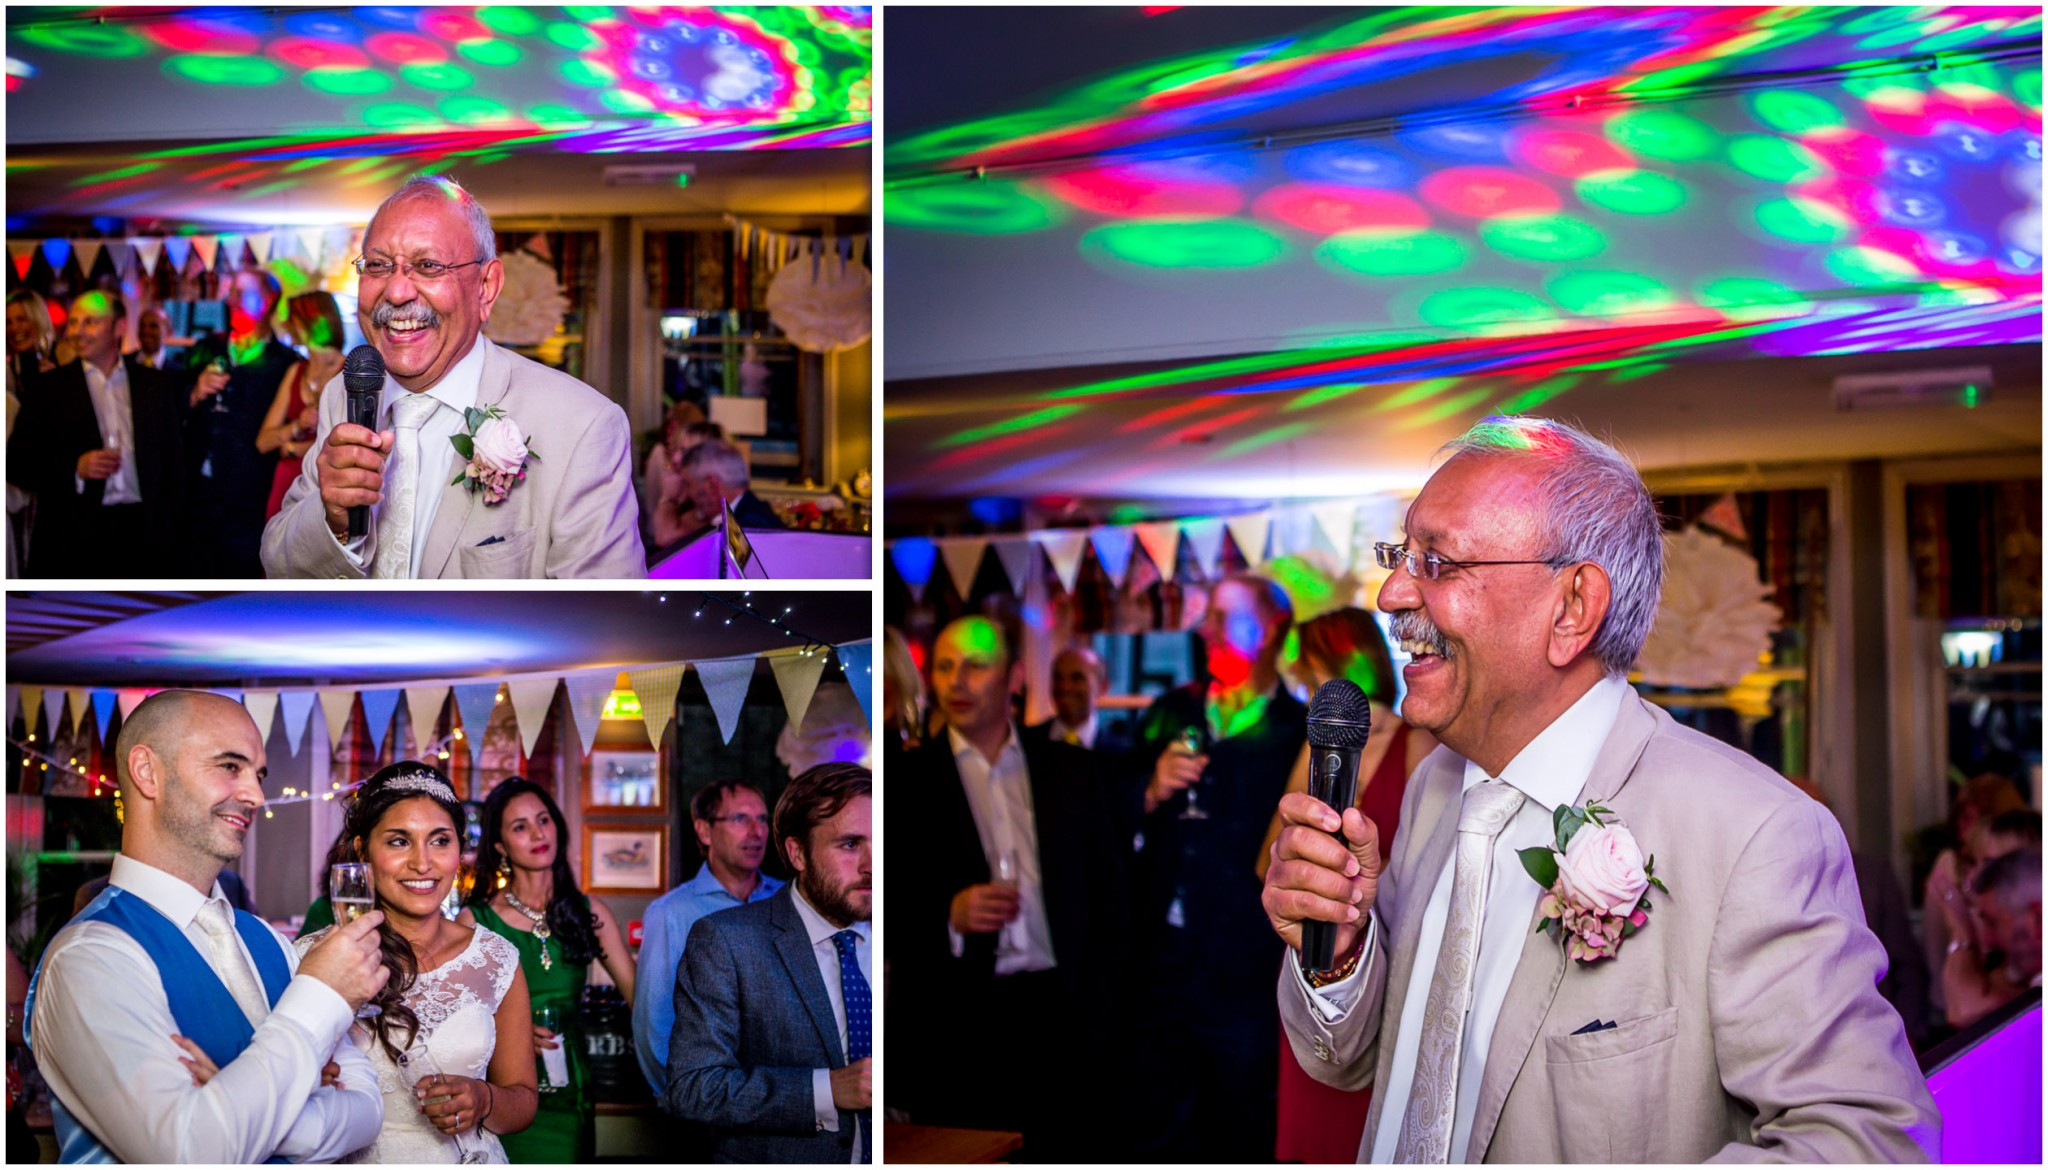 winchester-basing-room-wedding-photography-052